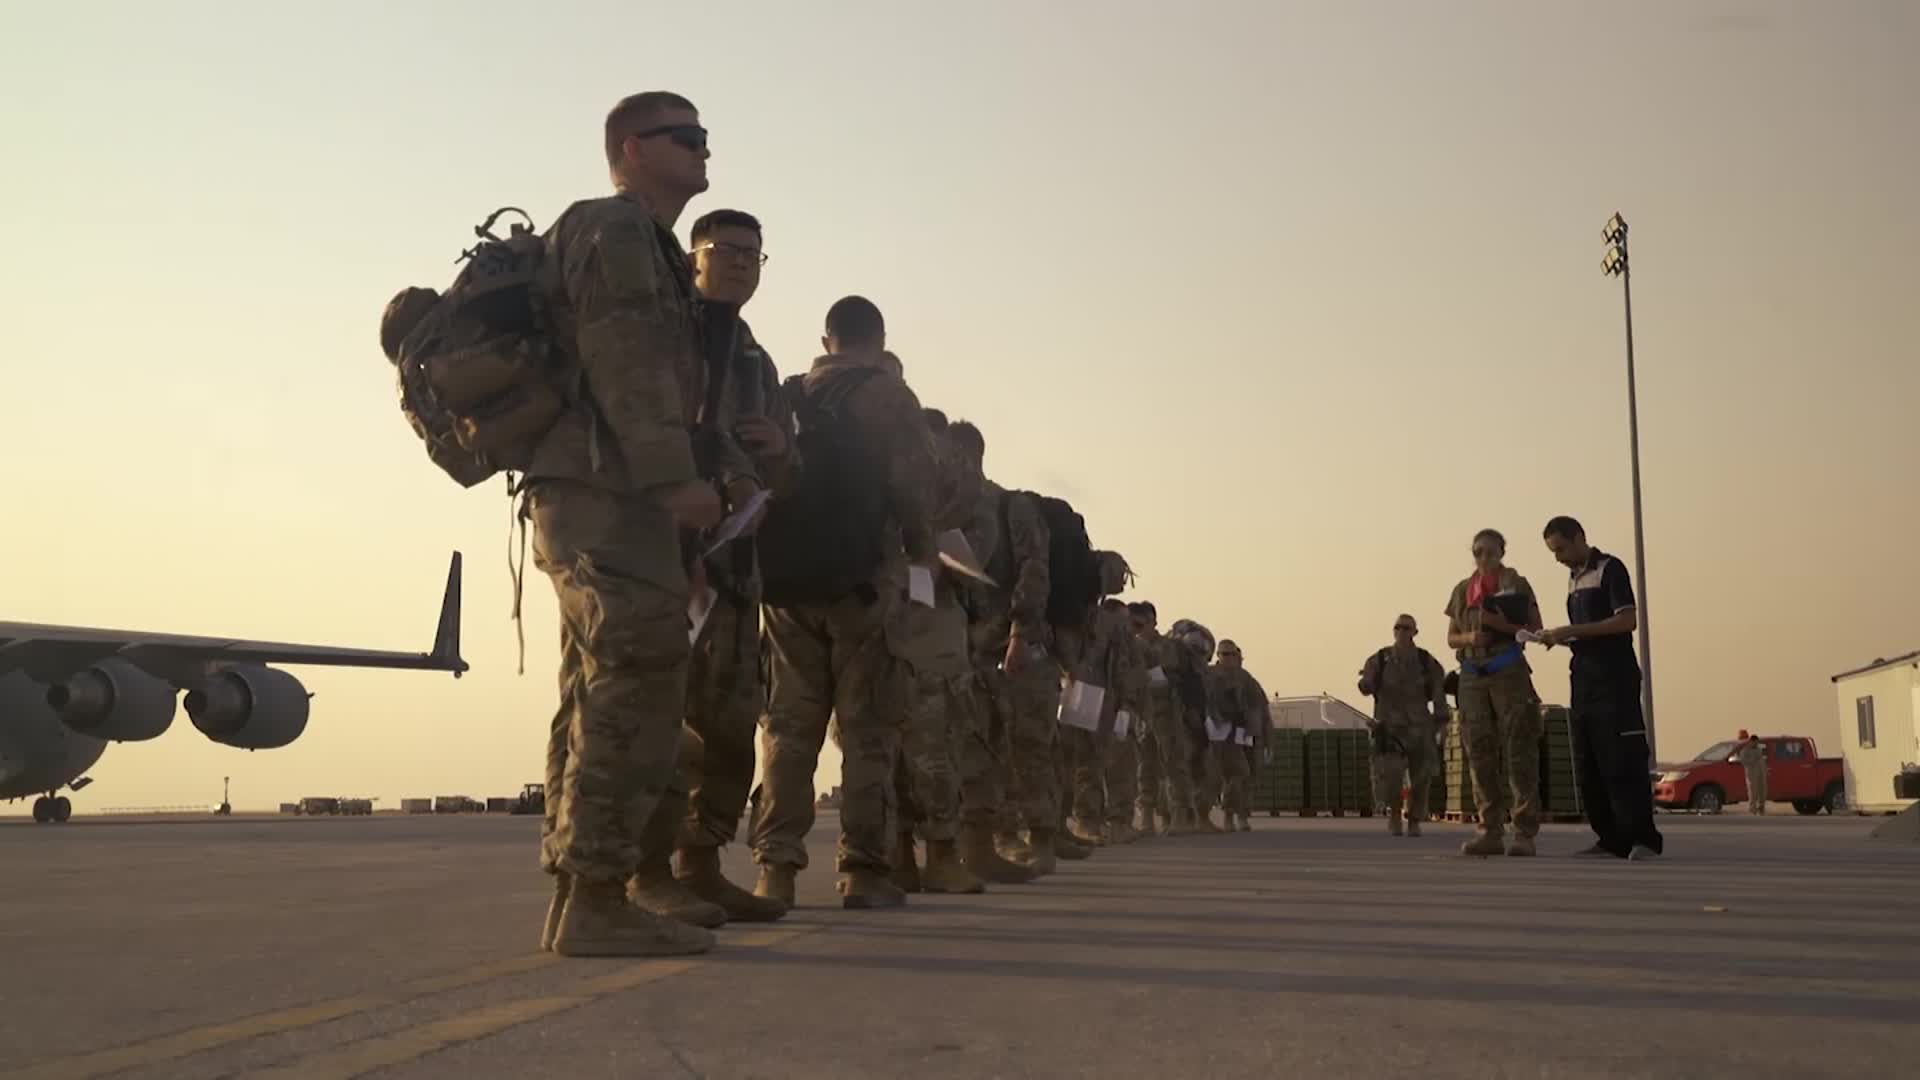 Saudi Arabia has paid $500M toward the cost of US troops in country